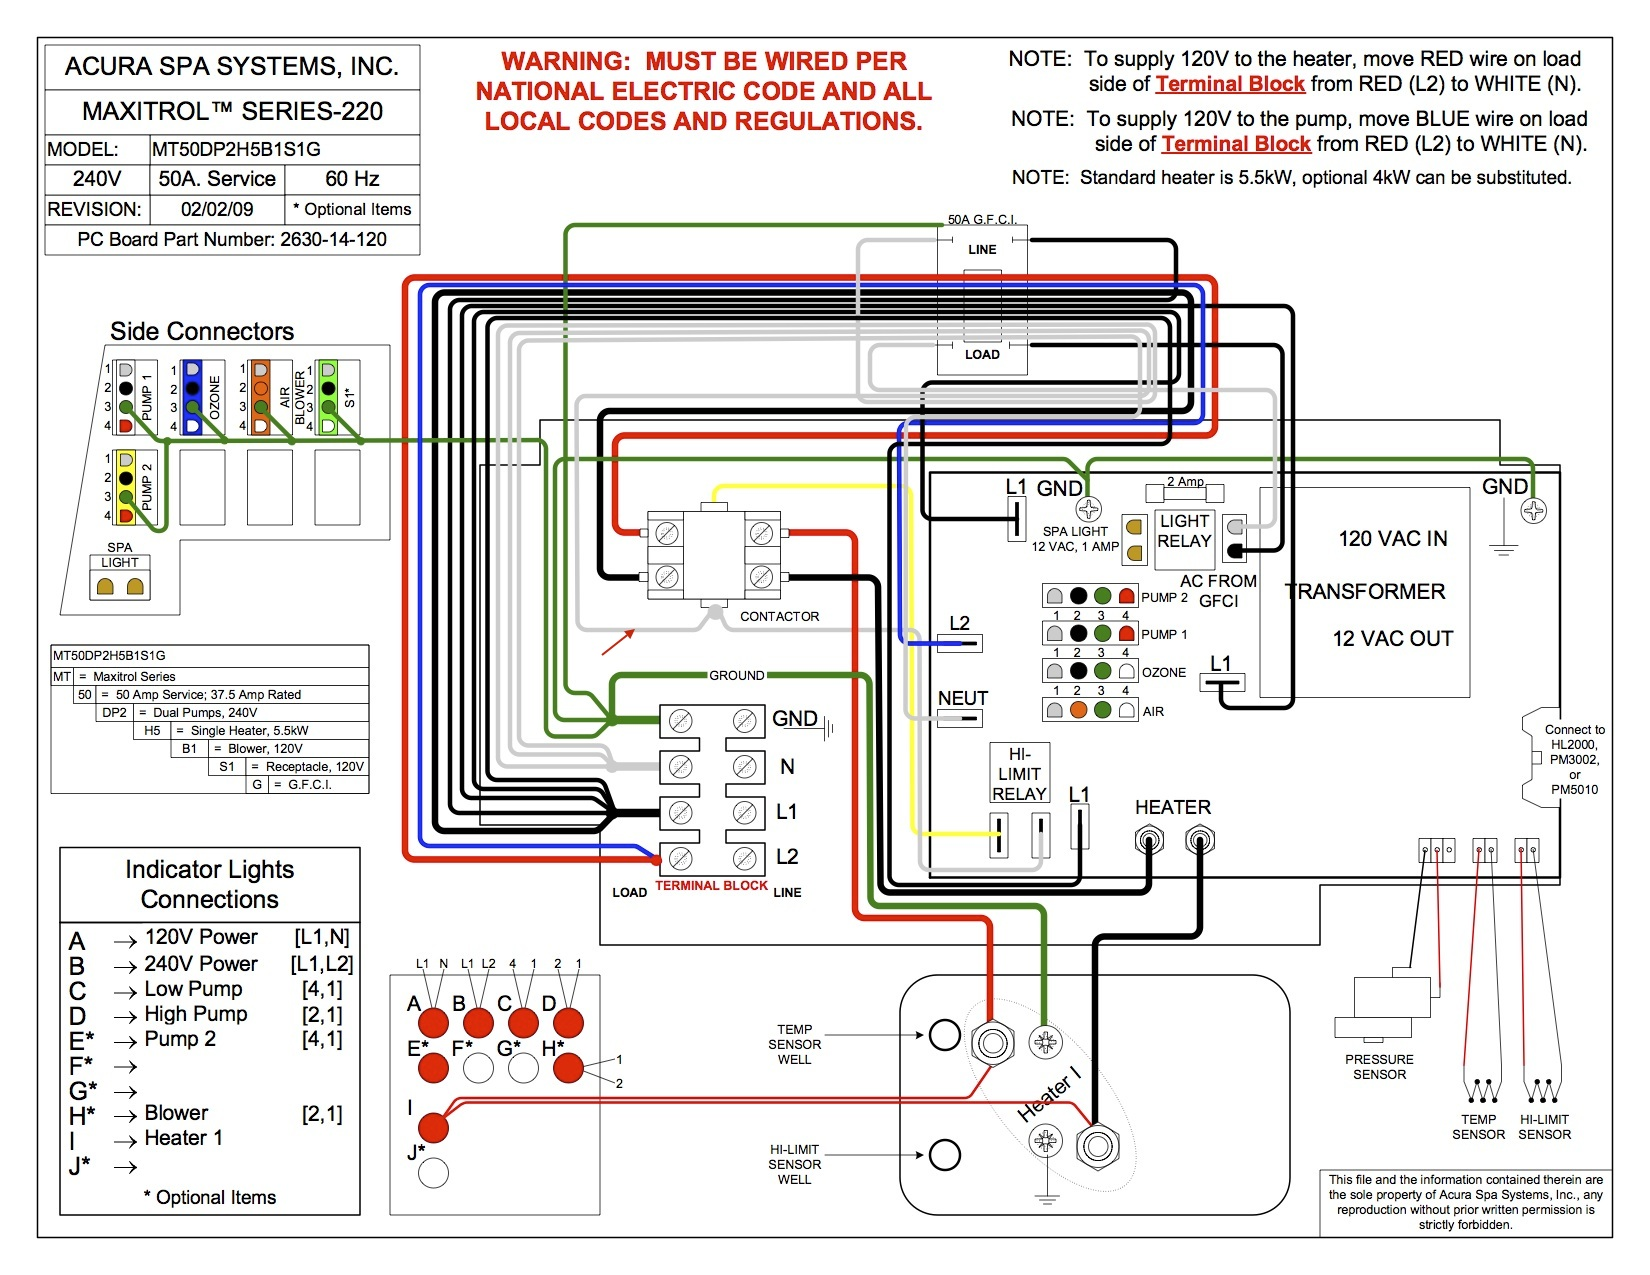 jacuzzi wiring diagram true freezer t 49f no power to spa pump twinsprings research institute